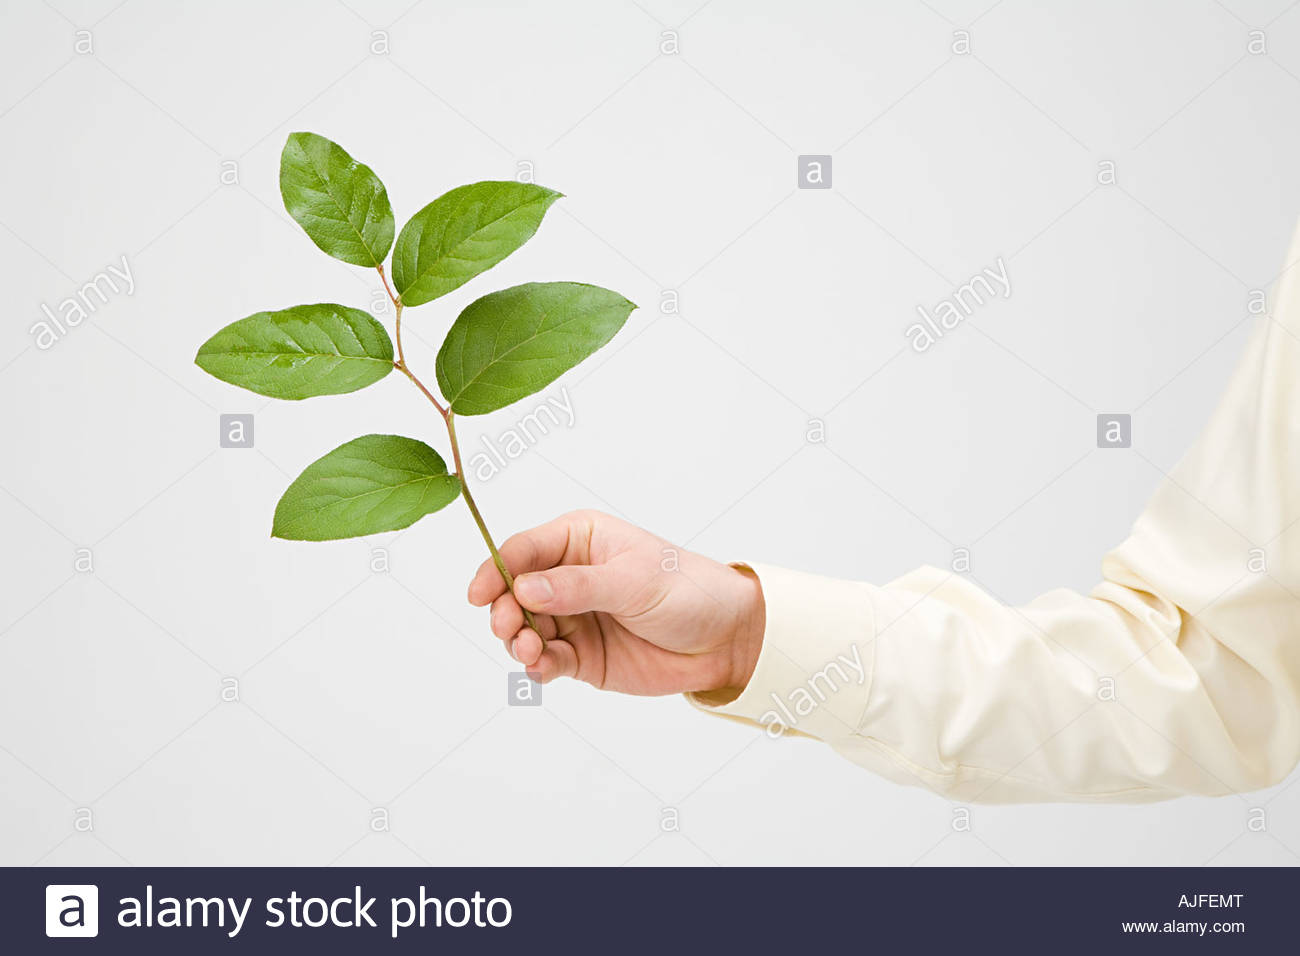 Person holding a branch - Stock Image